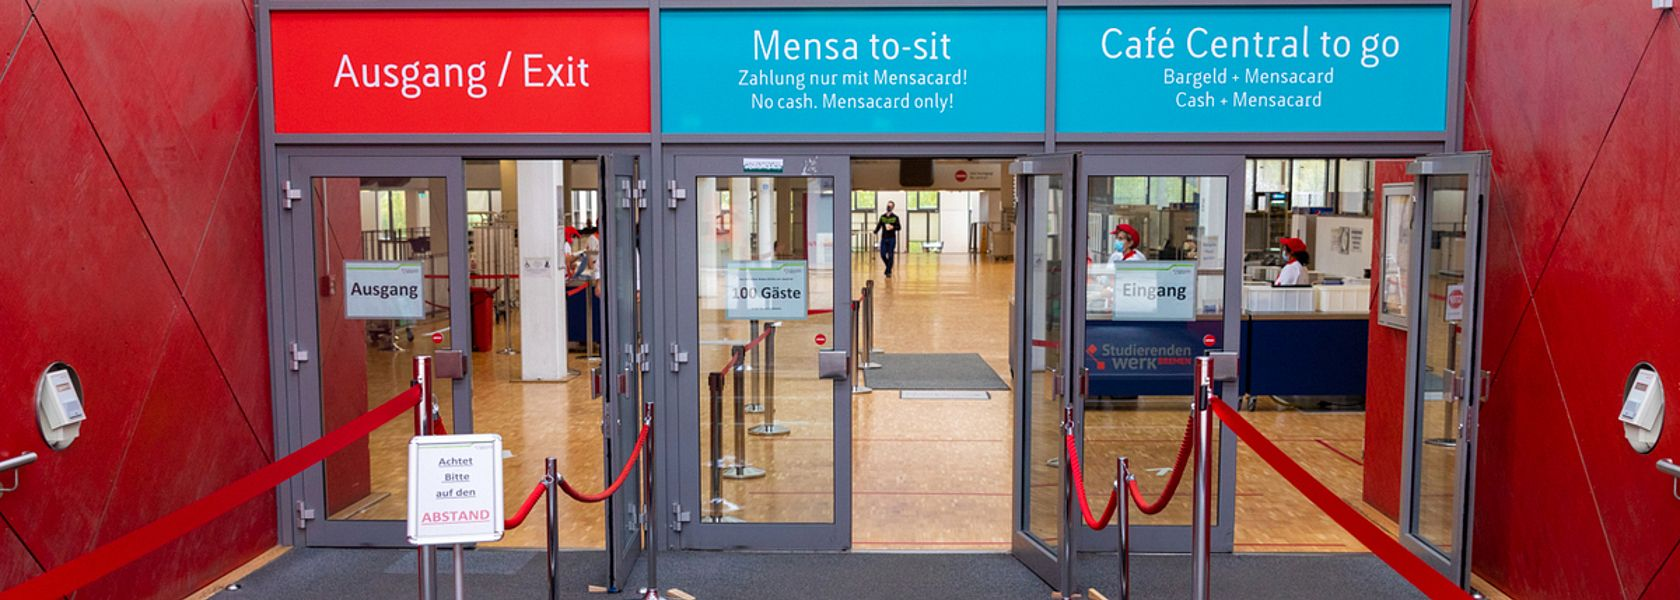 The entrance of the canteen on the campus of the University of Bremen: There are three doors, above each of them a lettering is attached: Exit, Mensa to sit and Café Central to go